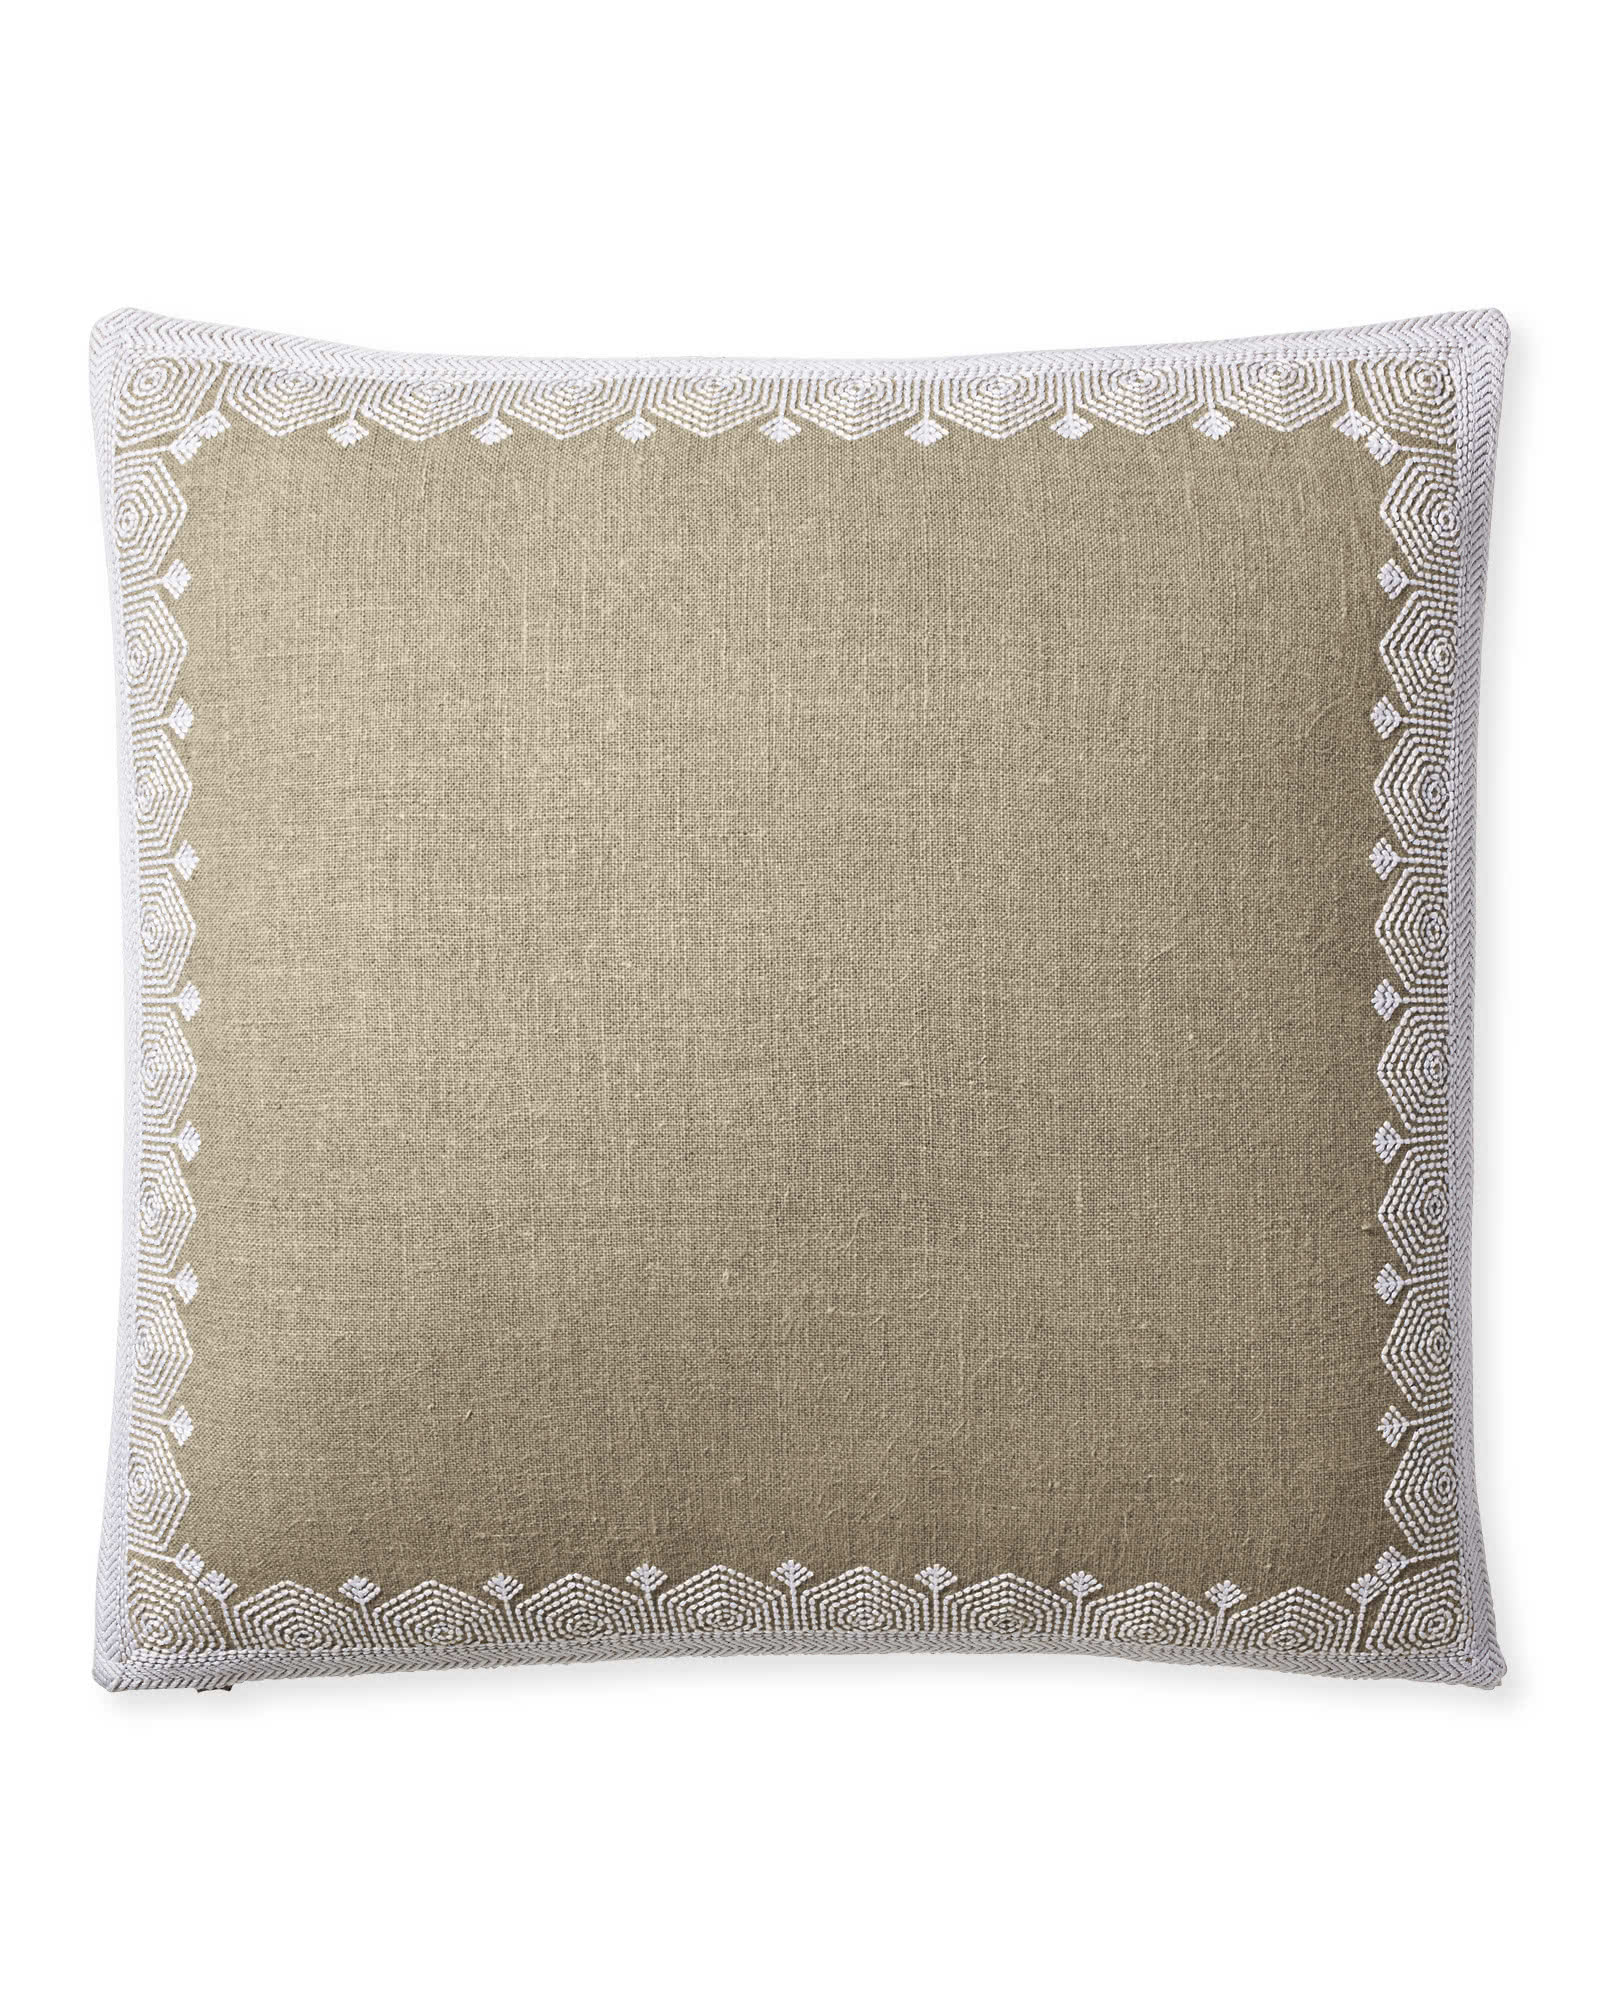 Olympia Pillow Cover,